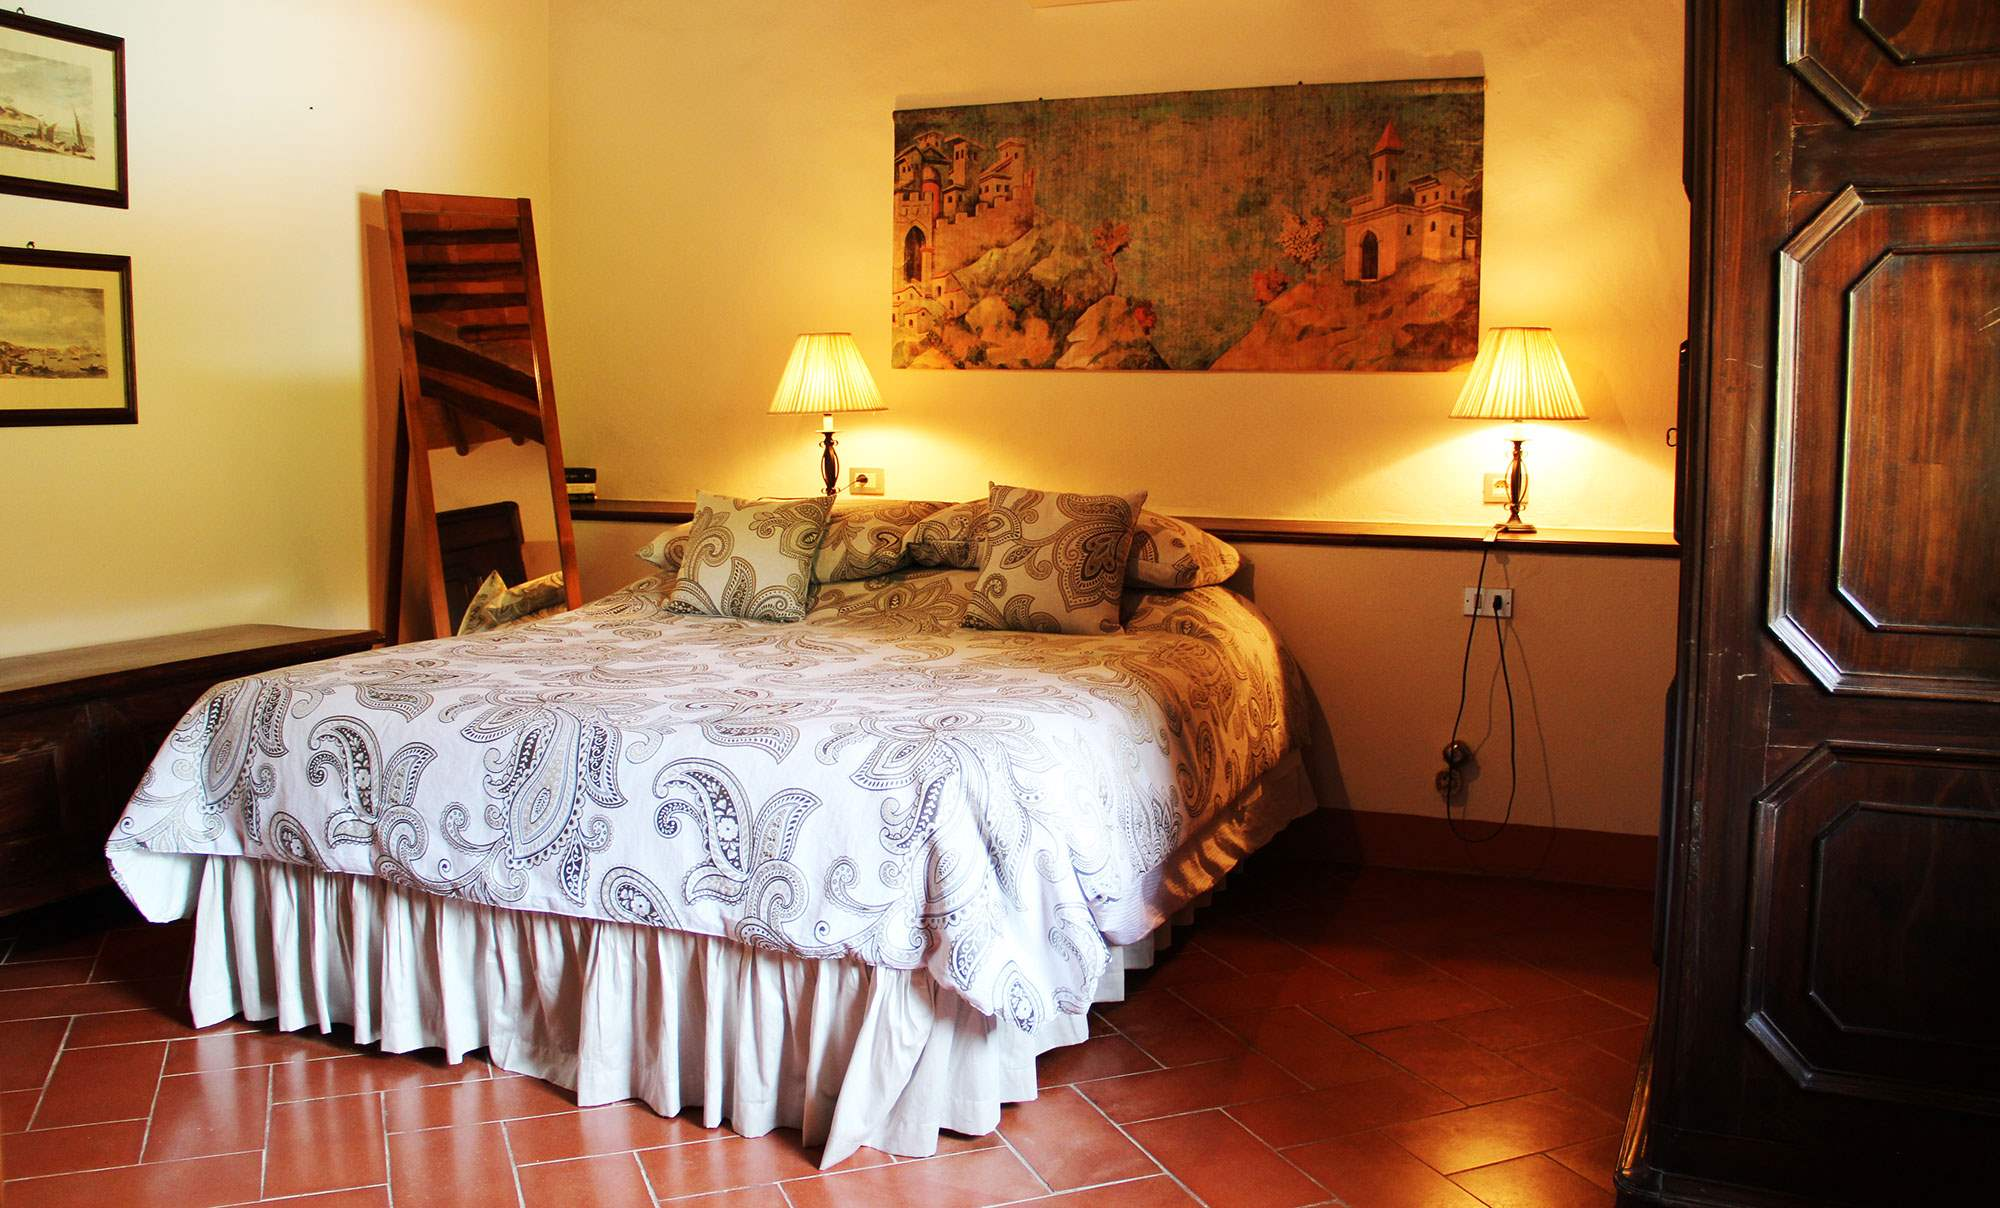 Villa Felicita, Main house and apartment, 10 persons rate, 5 bedroom villa in Chianti & Countryside, Tuscany Photo #16